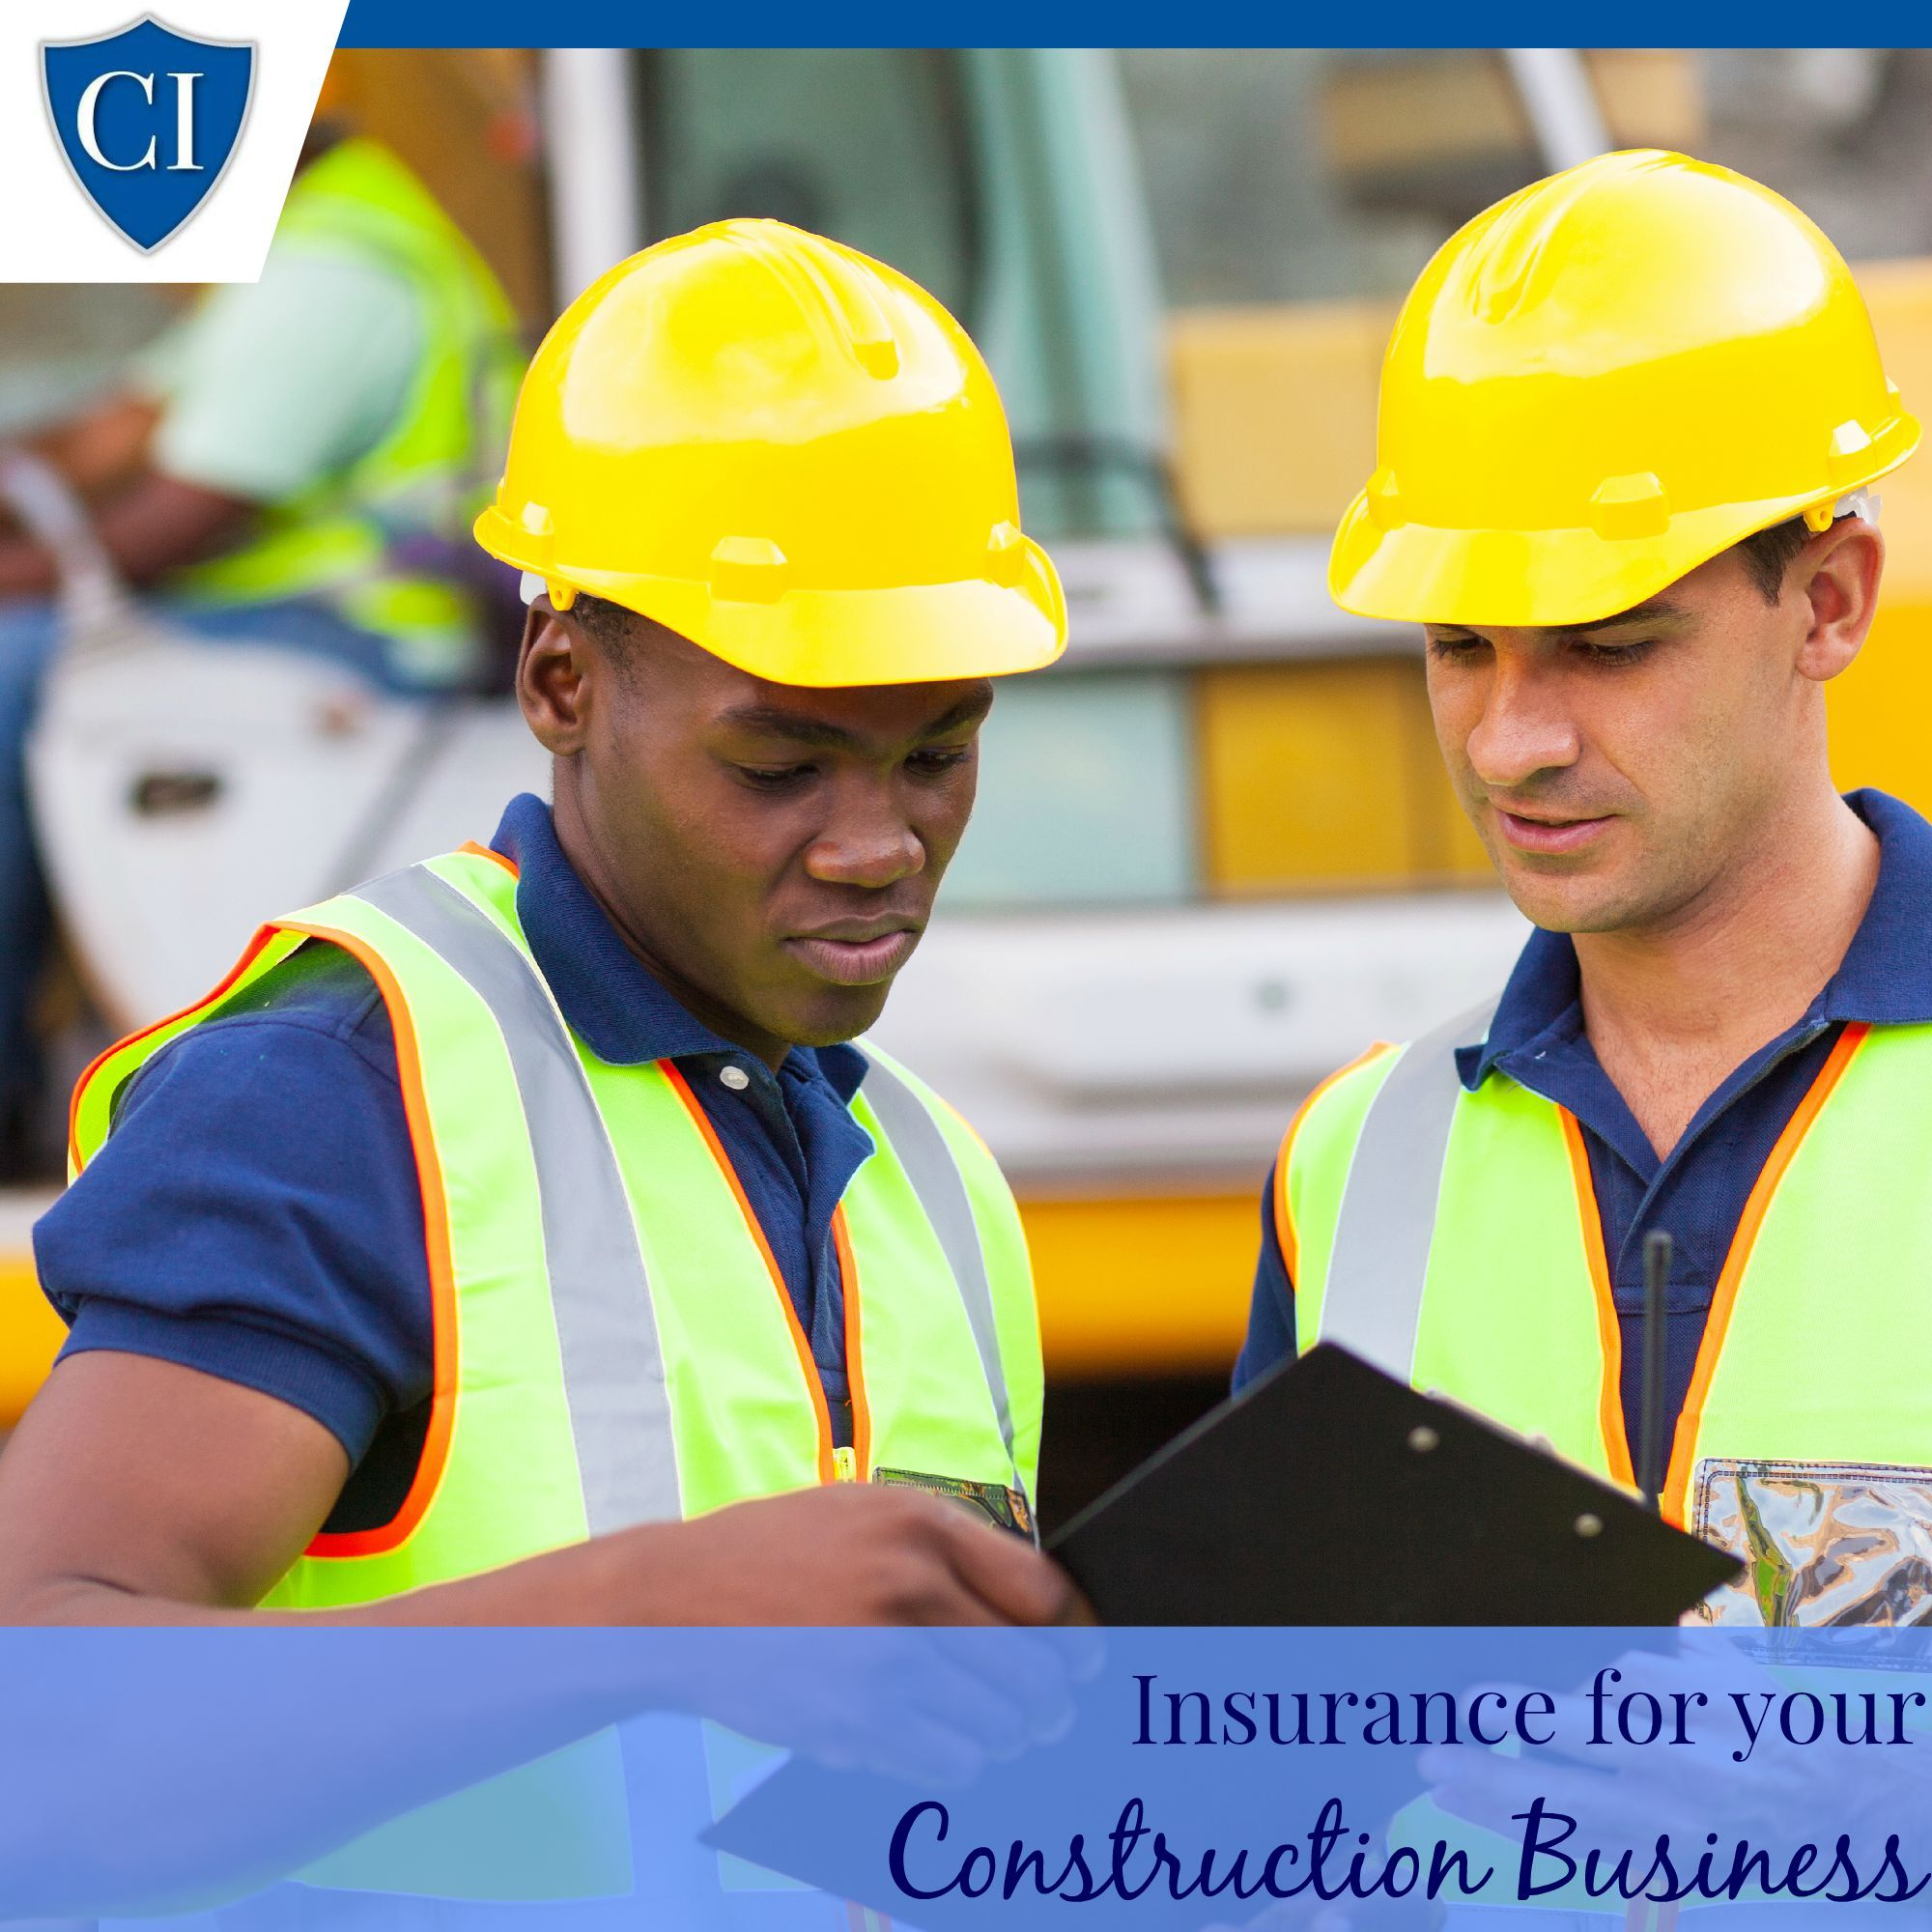 Insurance For Your Construction Business At Commercialinsurance Net Health And Safety Safety Courses Online Training